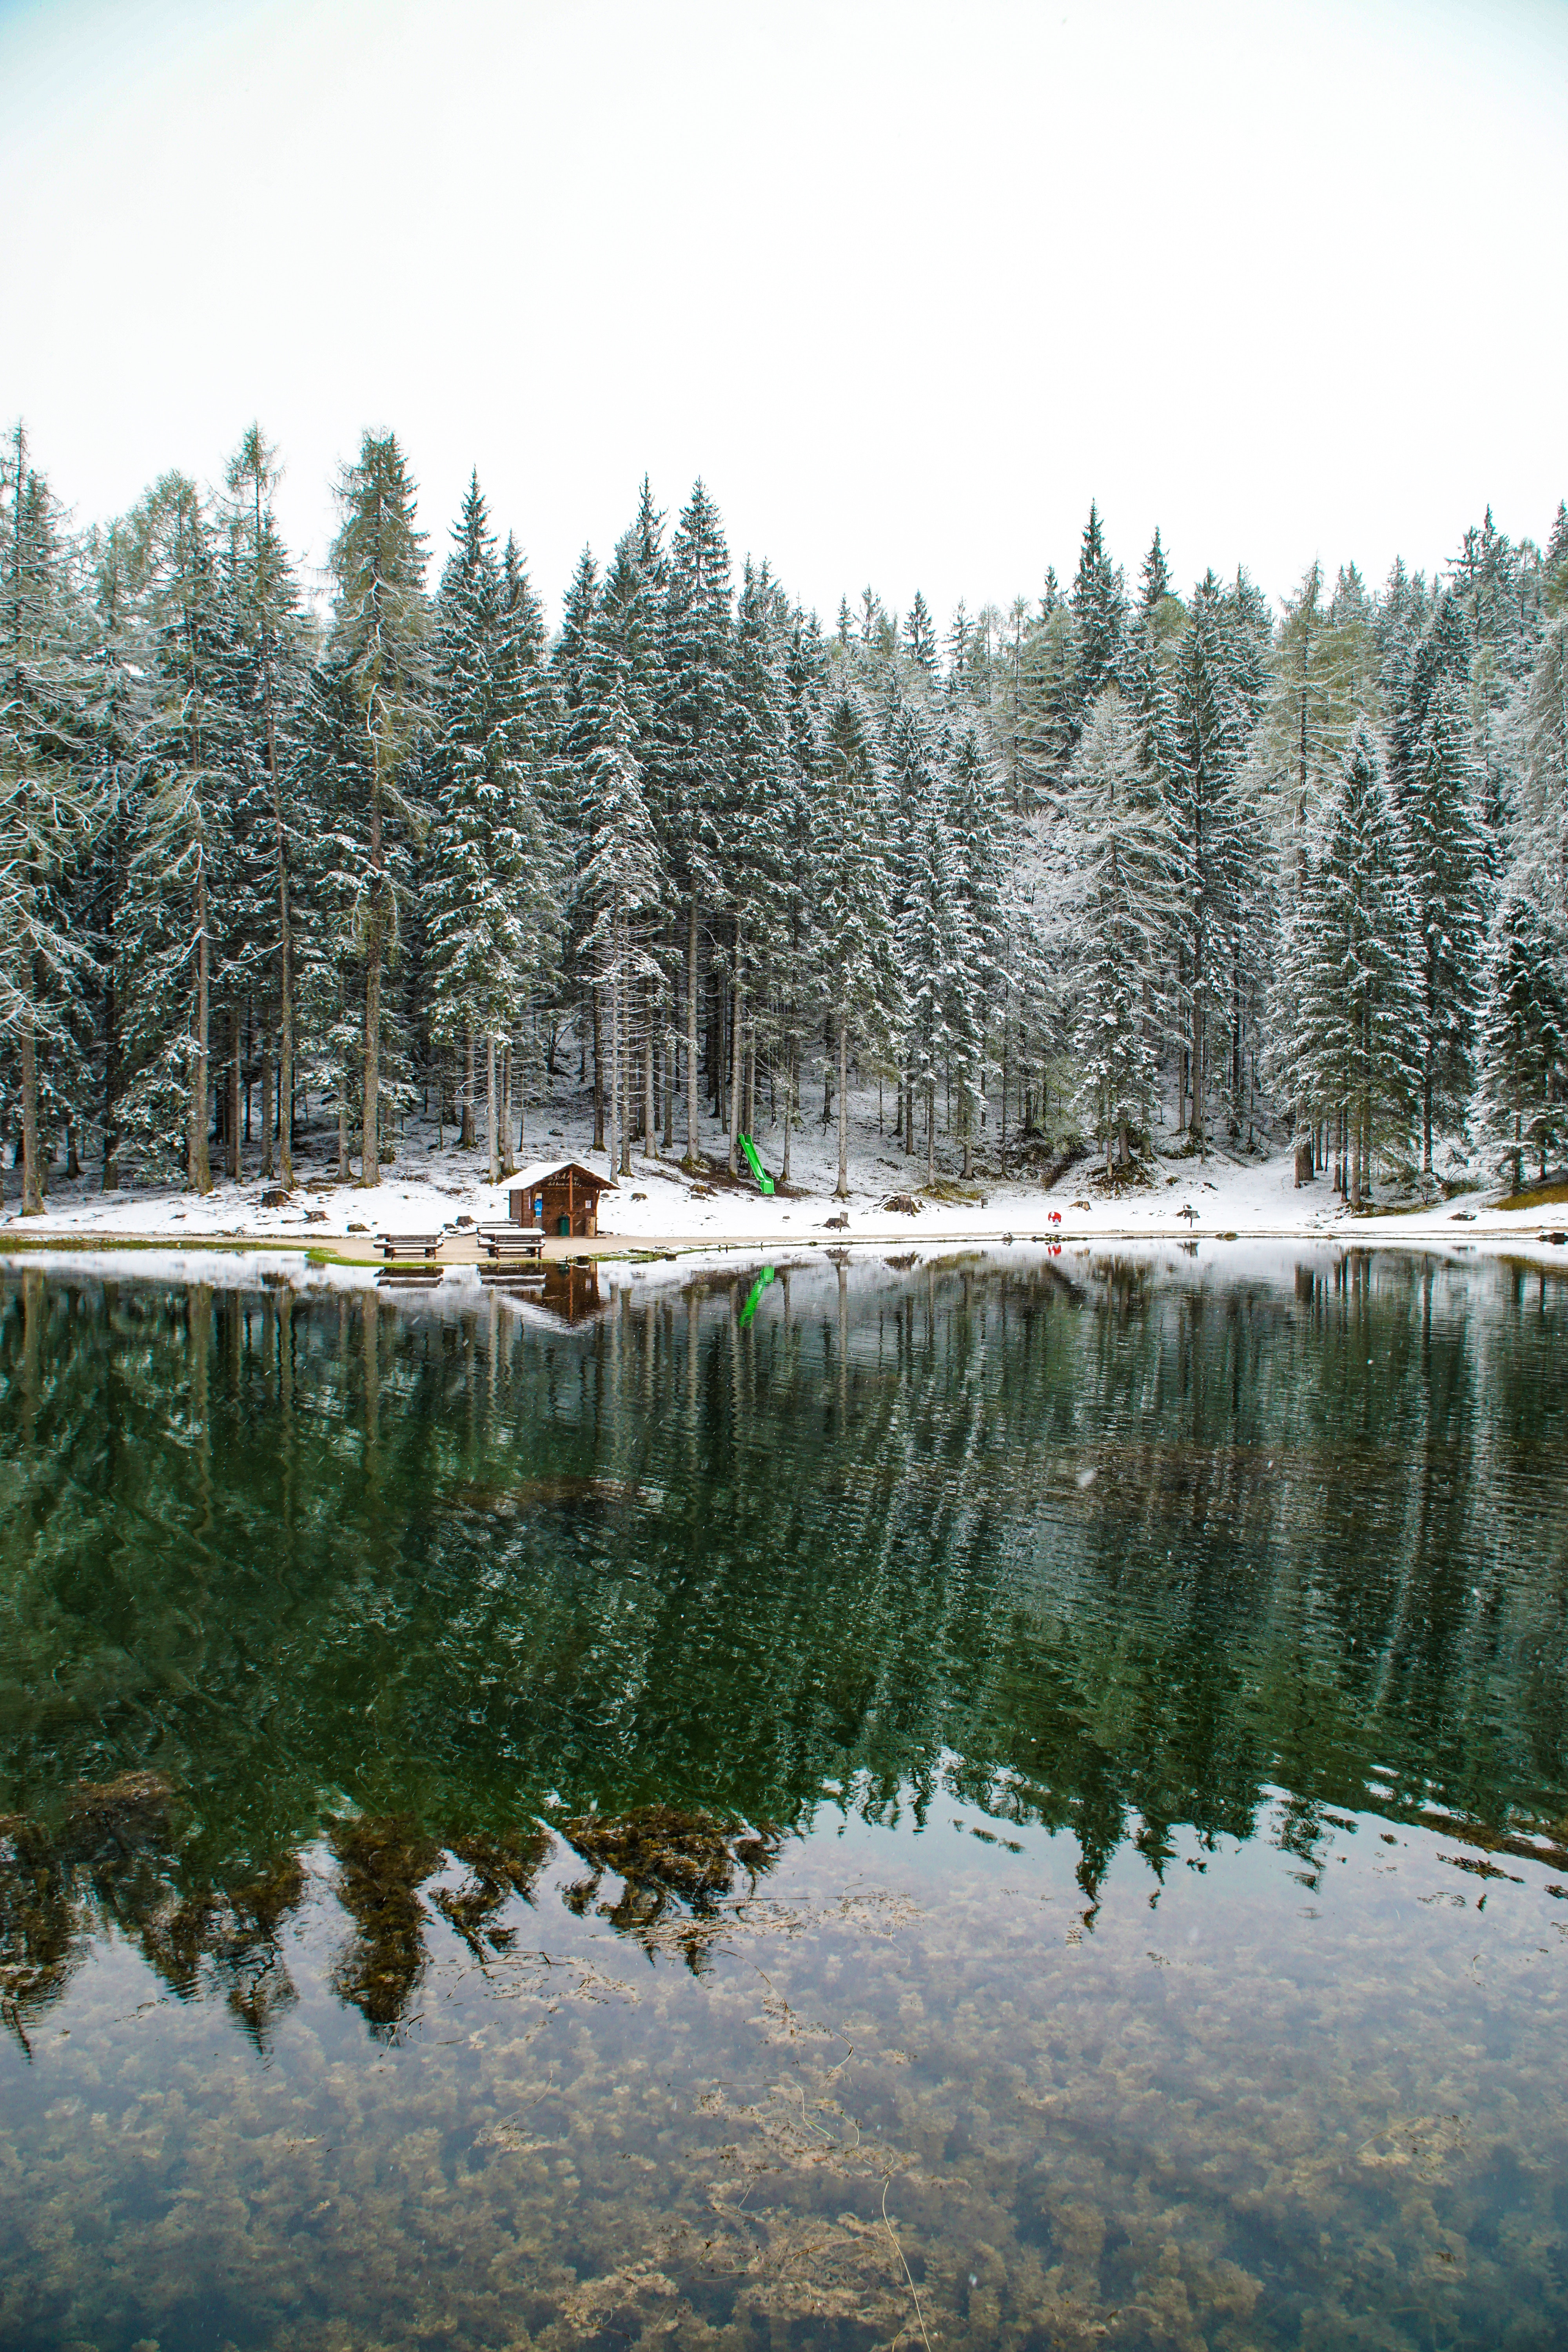 121916 download wallpaper Nature, Lake, Forest, Small House, Lodge, Snow, Privacy, Seclusion, Landscape screensavers and pictures for free